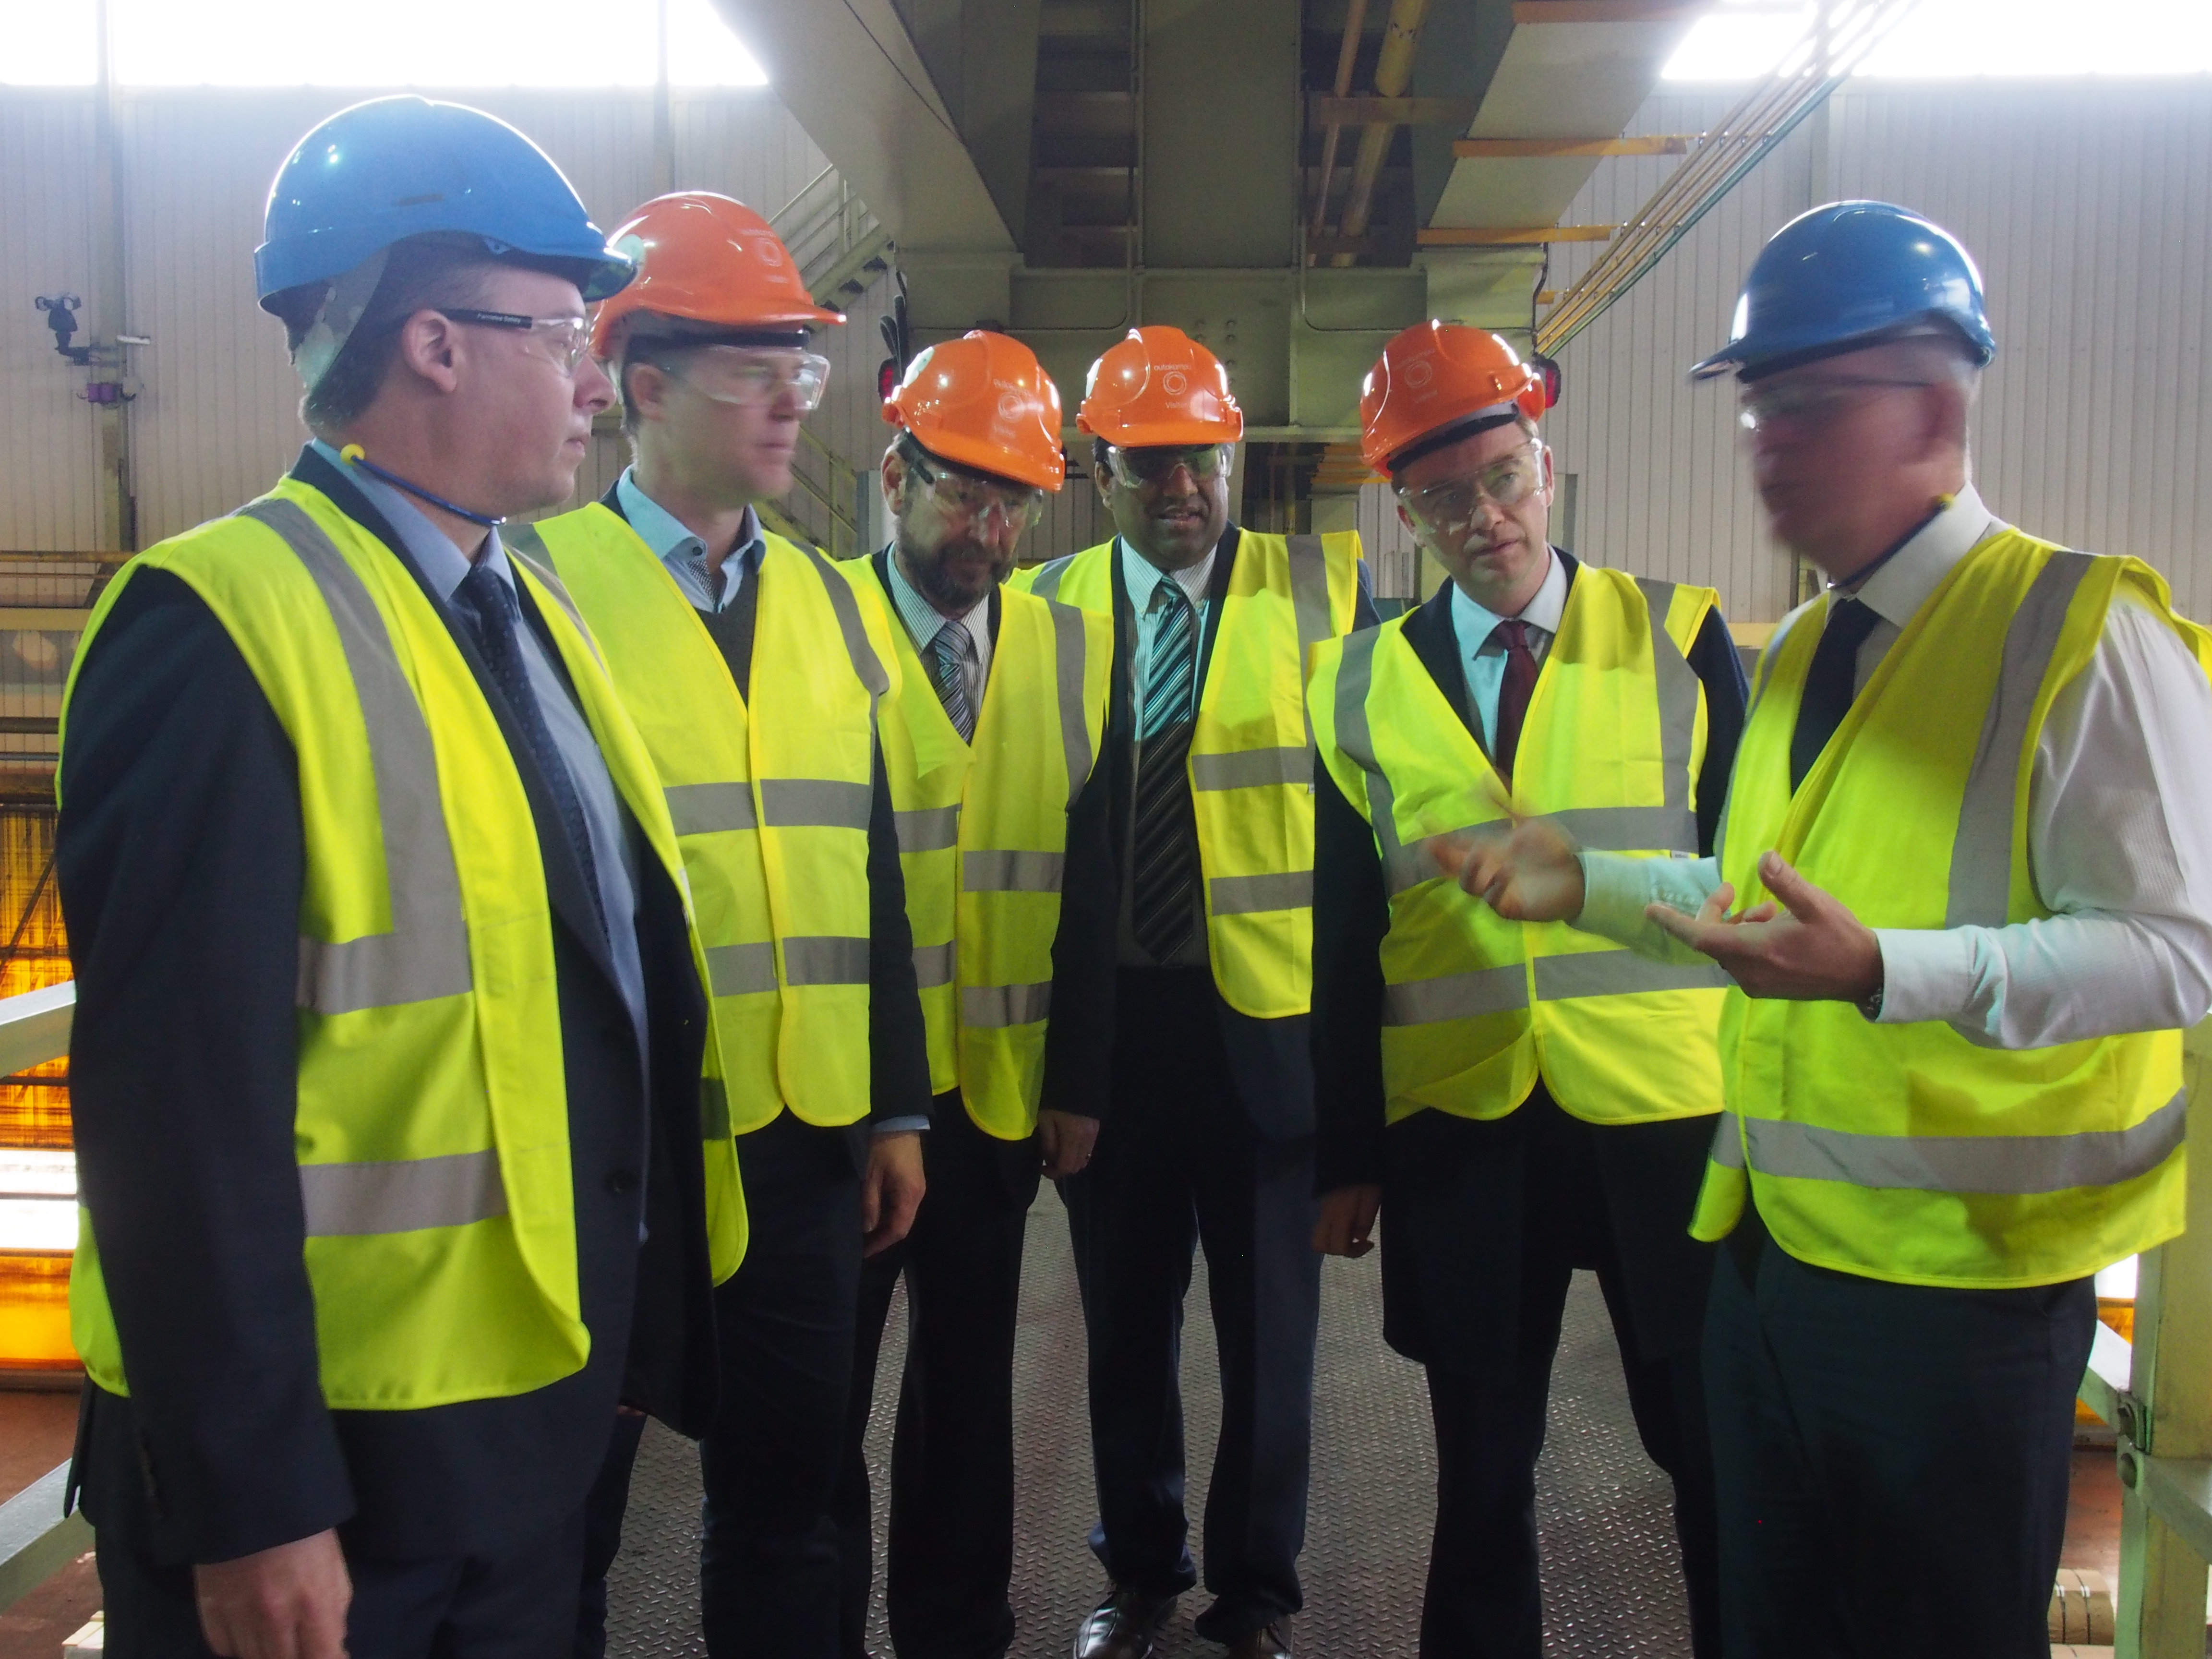 Tim Farron and Nick Clegg visit Sheffield Steel Works